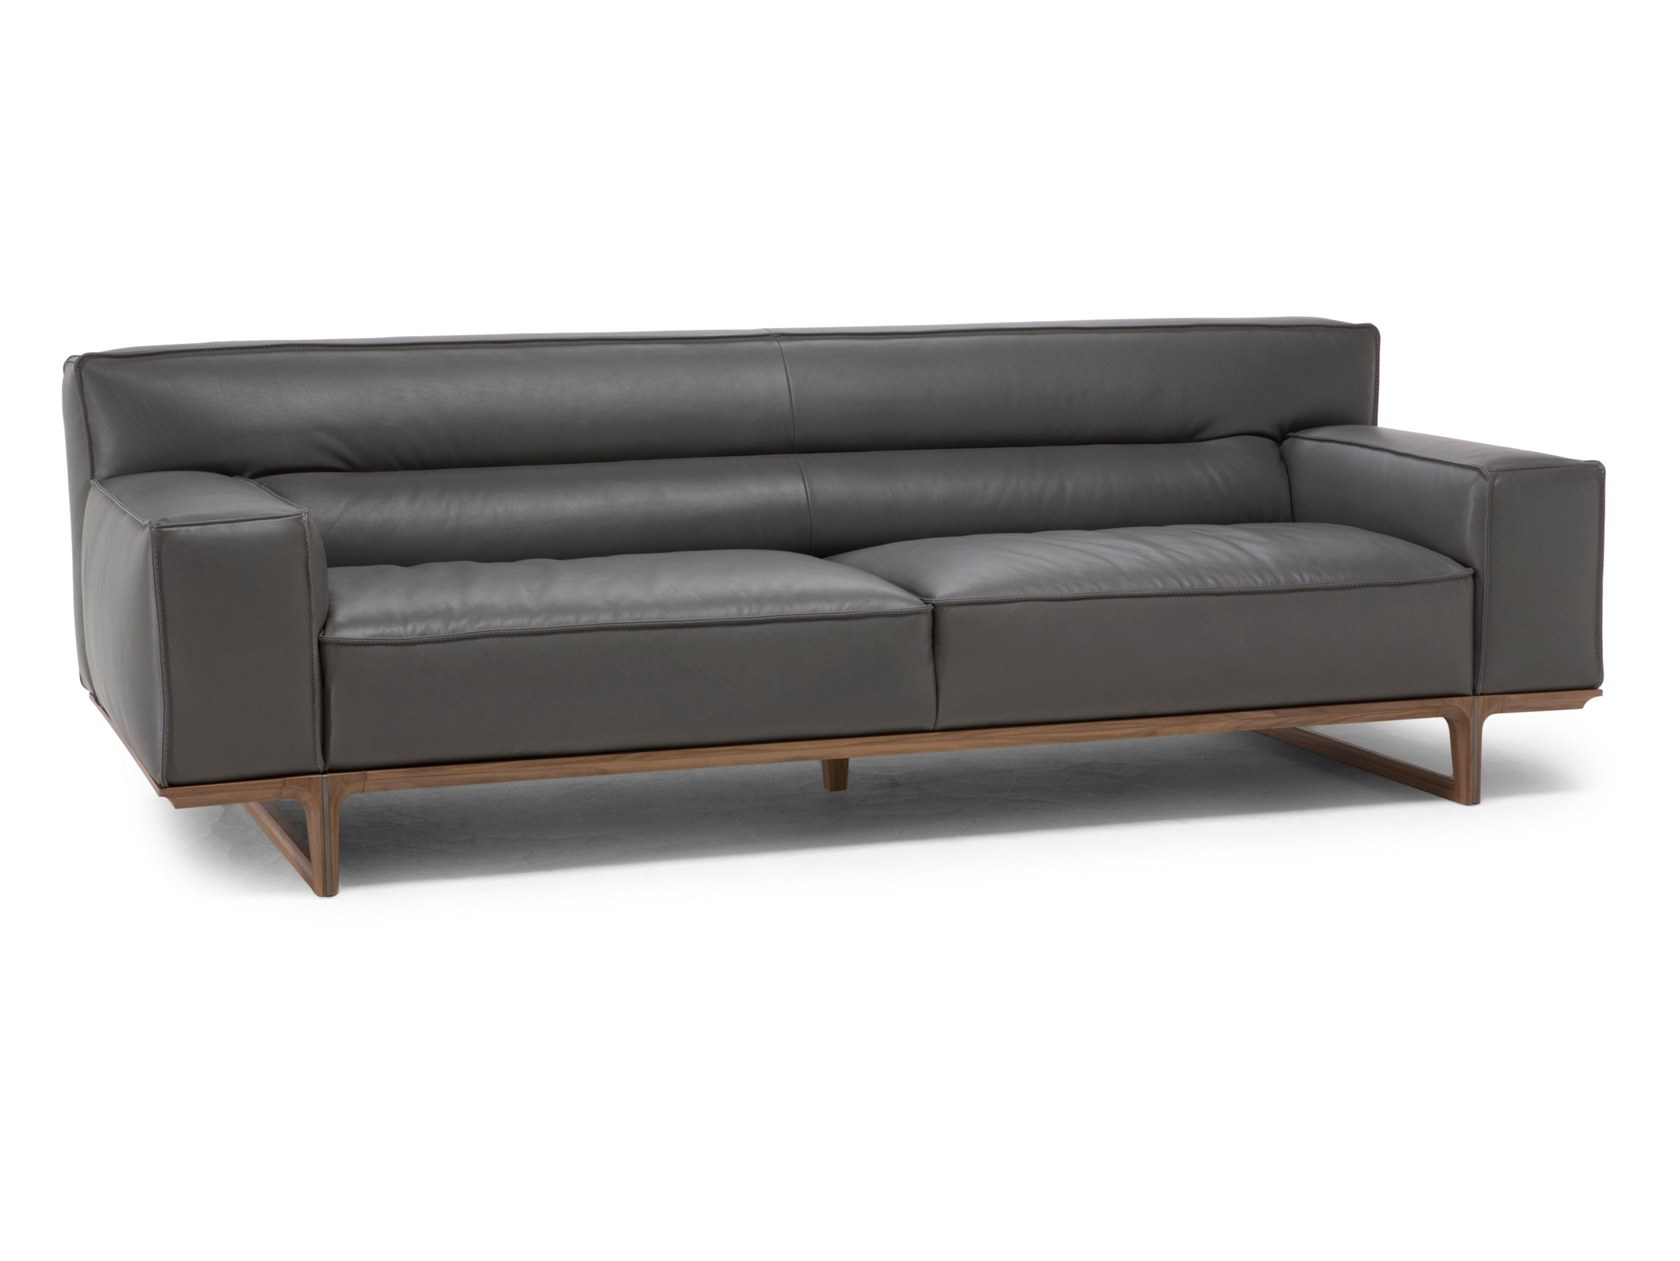 natuzzi sectional sofa connectors companies in bangalore kendo 3 seater collection by design